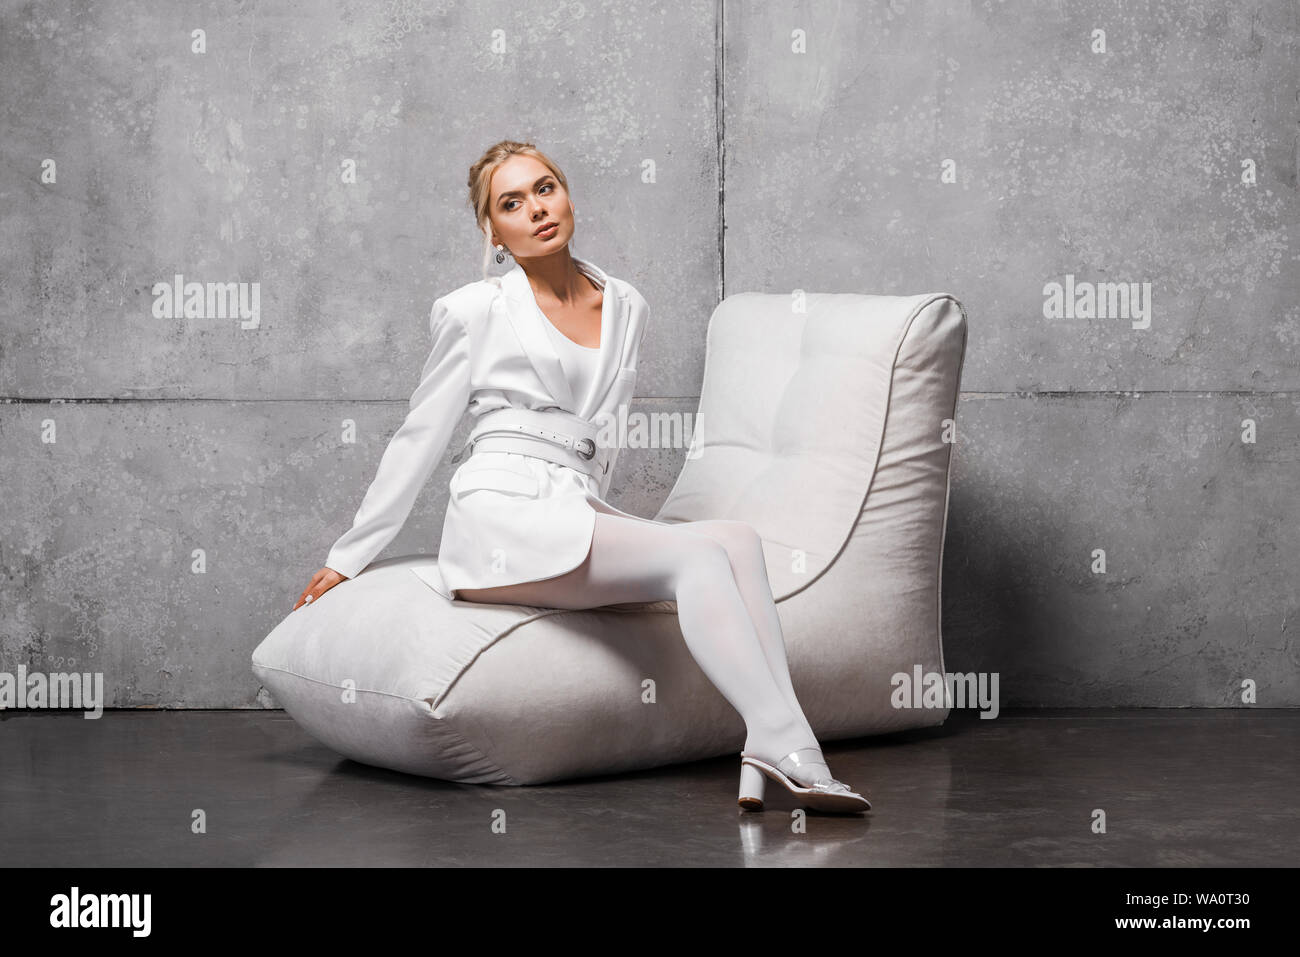 Magnificent Beautiful Blonde Woman Sitting On Soft Bean Bag Chair On Andrewgaddart Wooden Chair Designs For Living Room Andrewgaddartcom